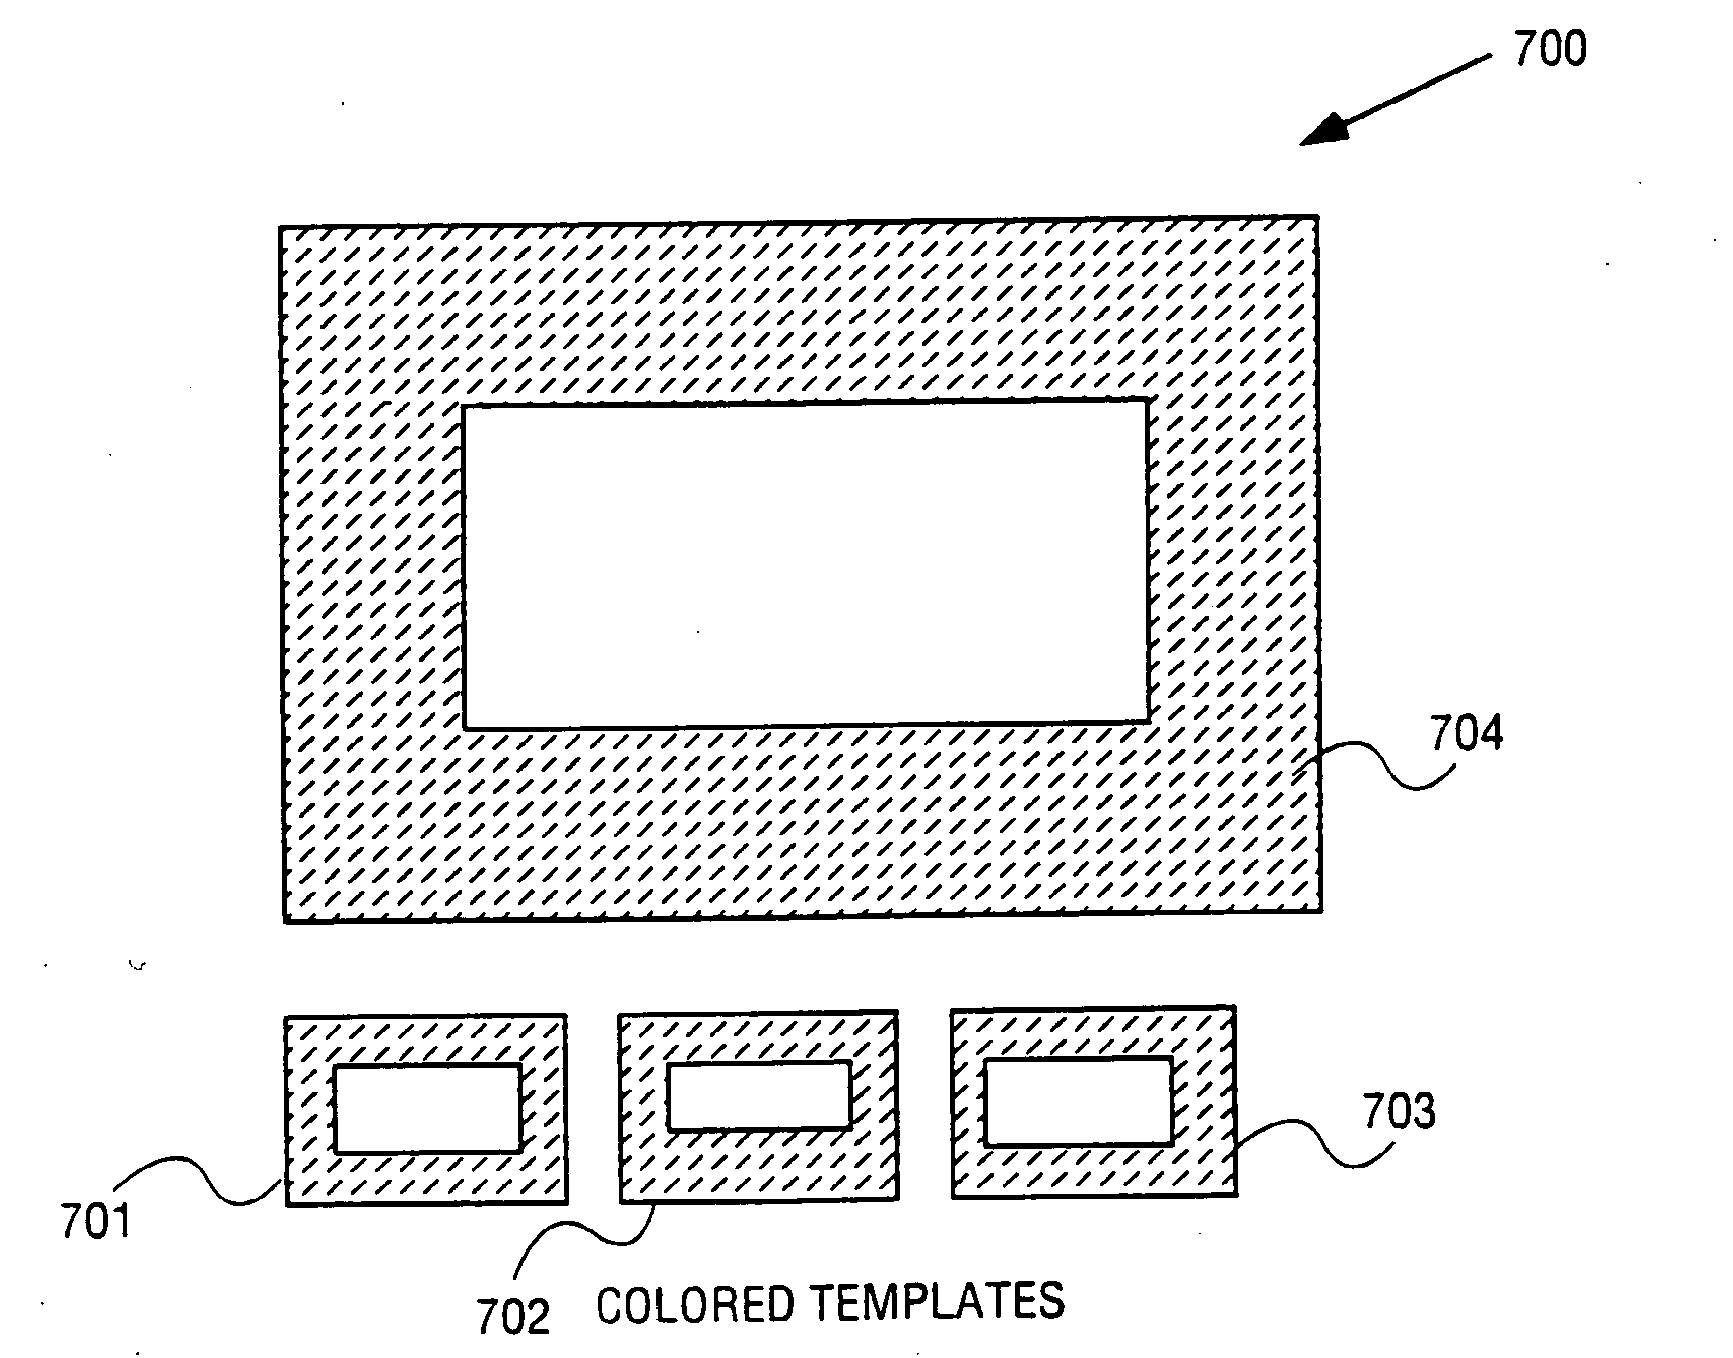 patent specification template - patent us20090136128 automatic color adjustment of a